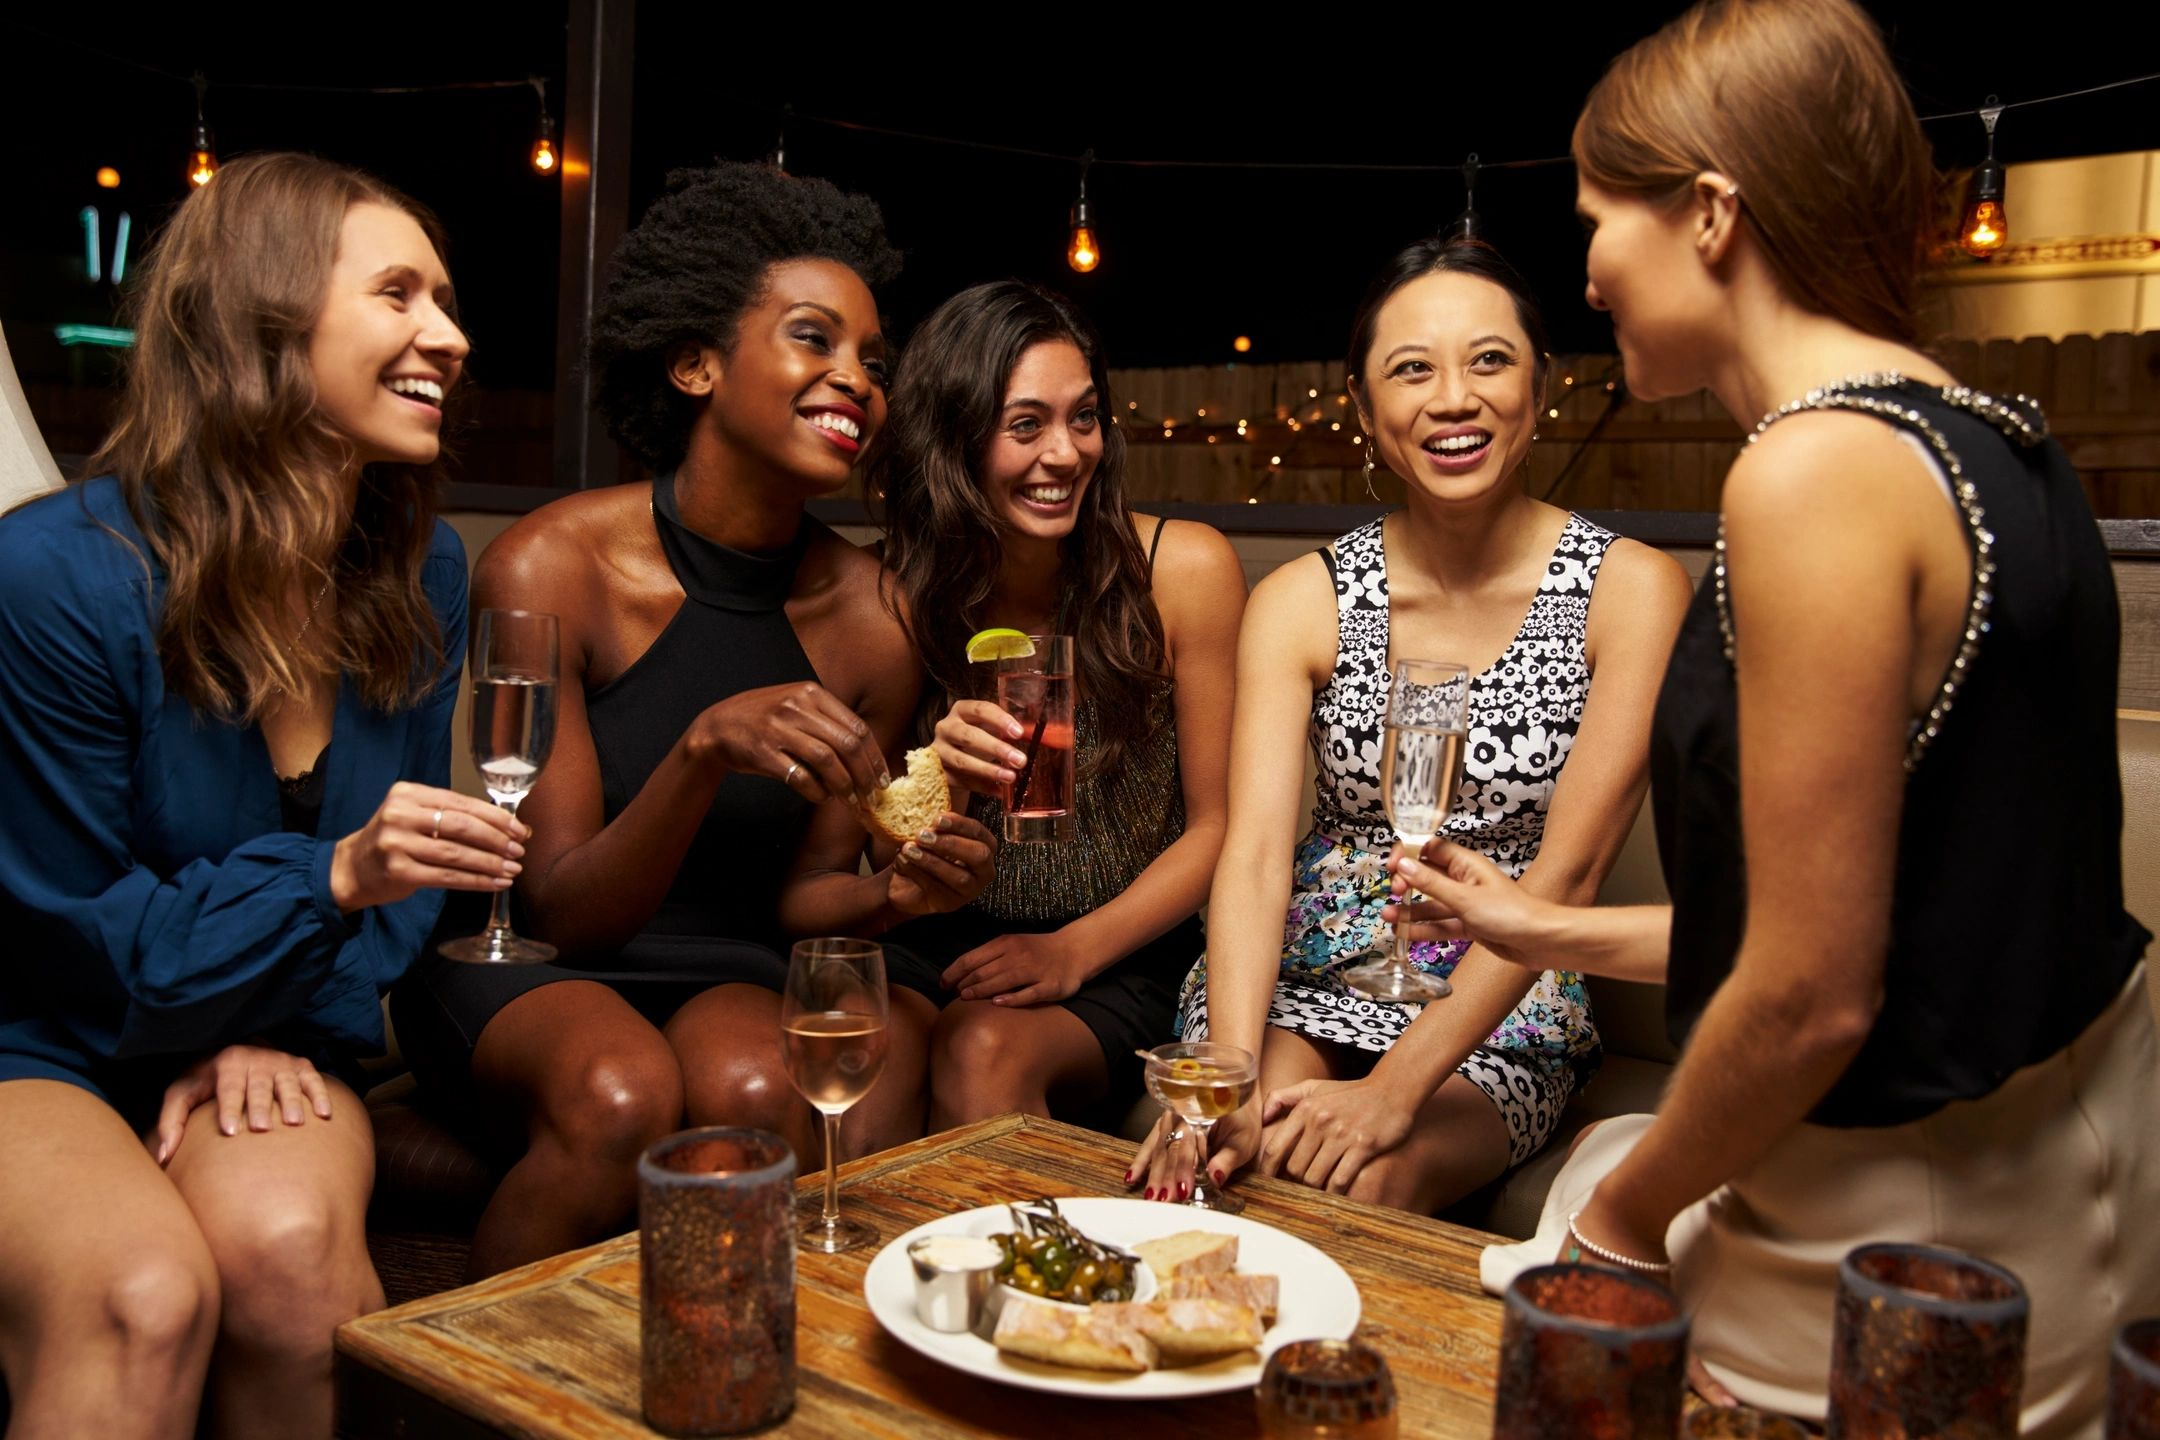 Ladies enjoying cocktails and appetizers